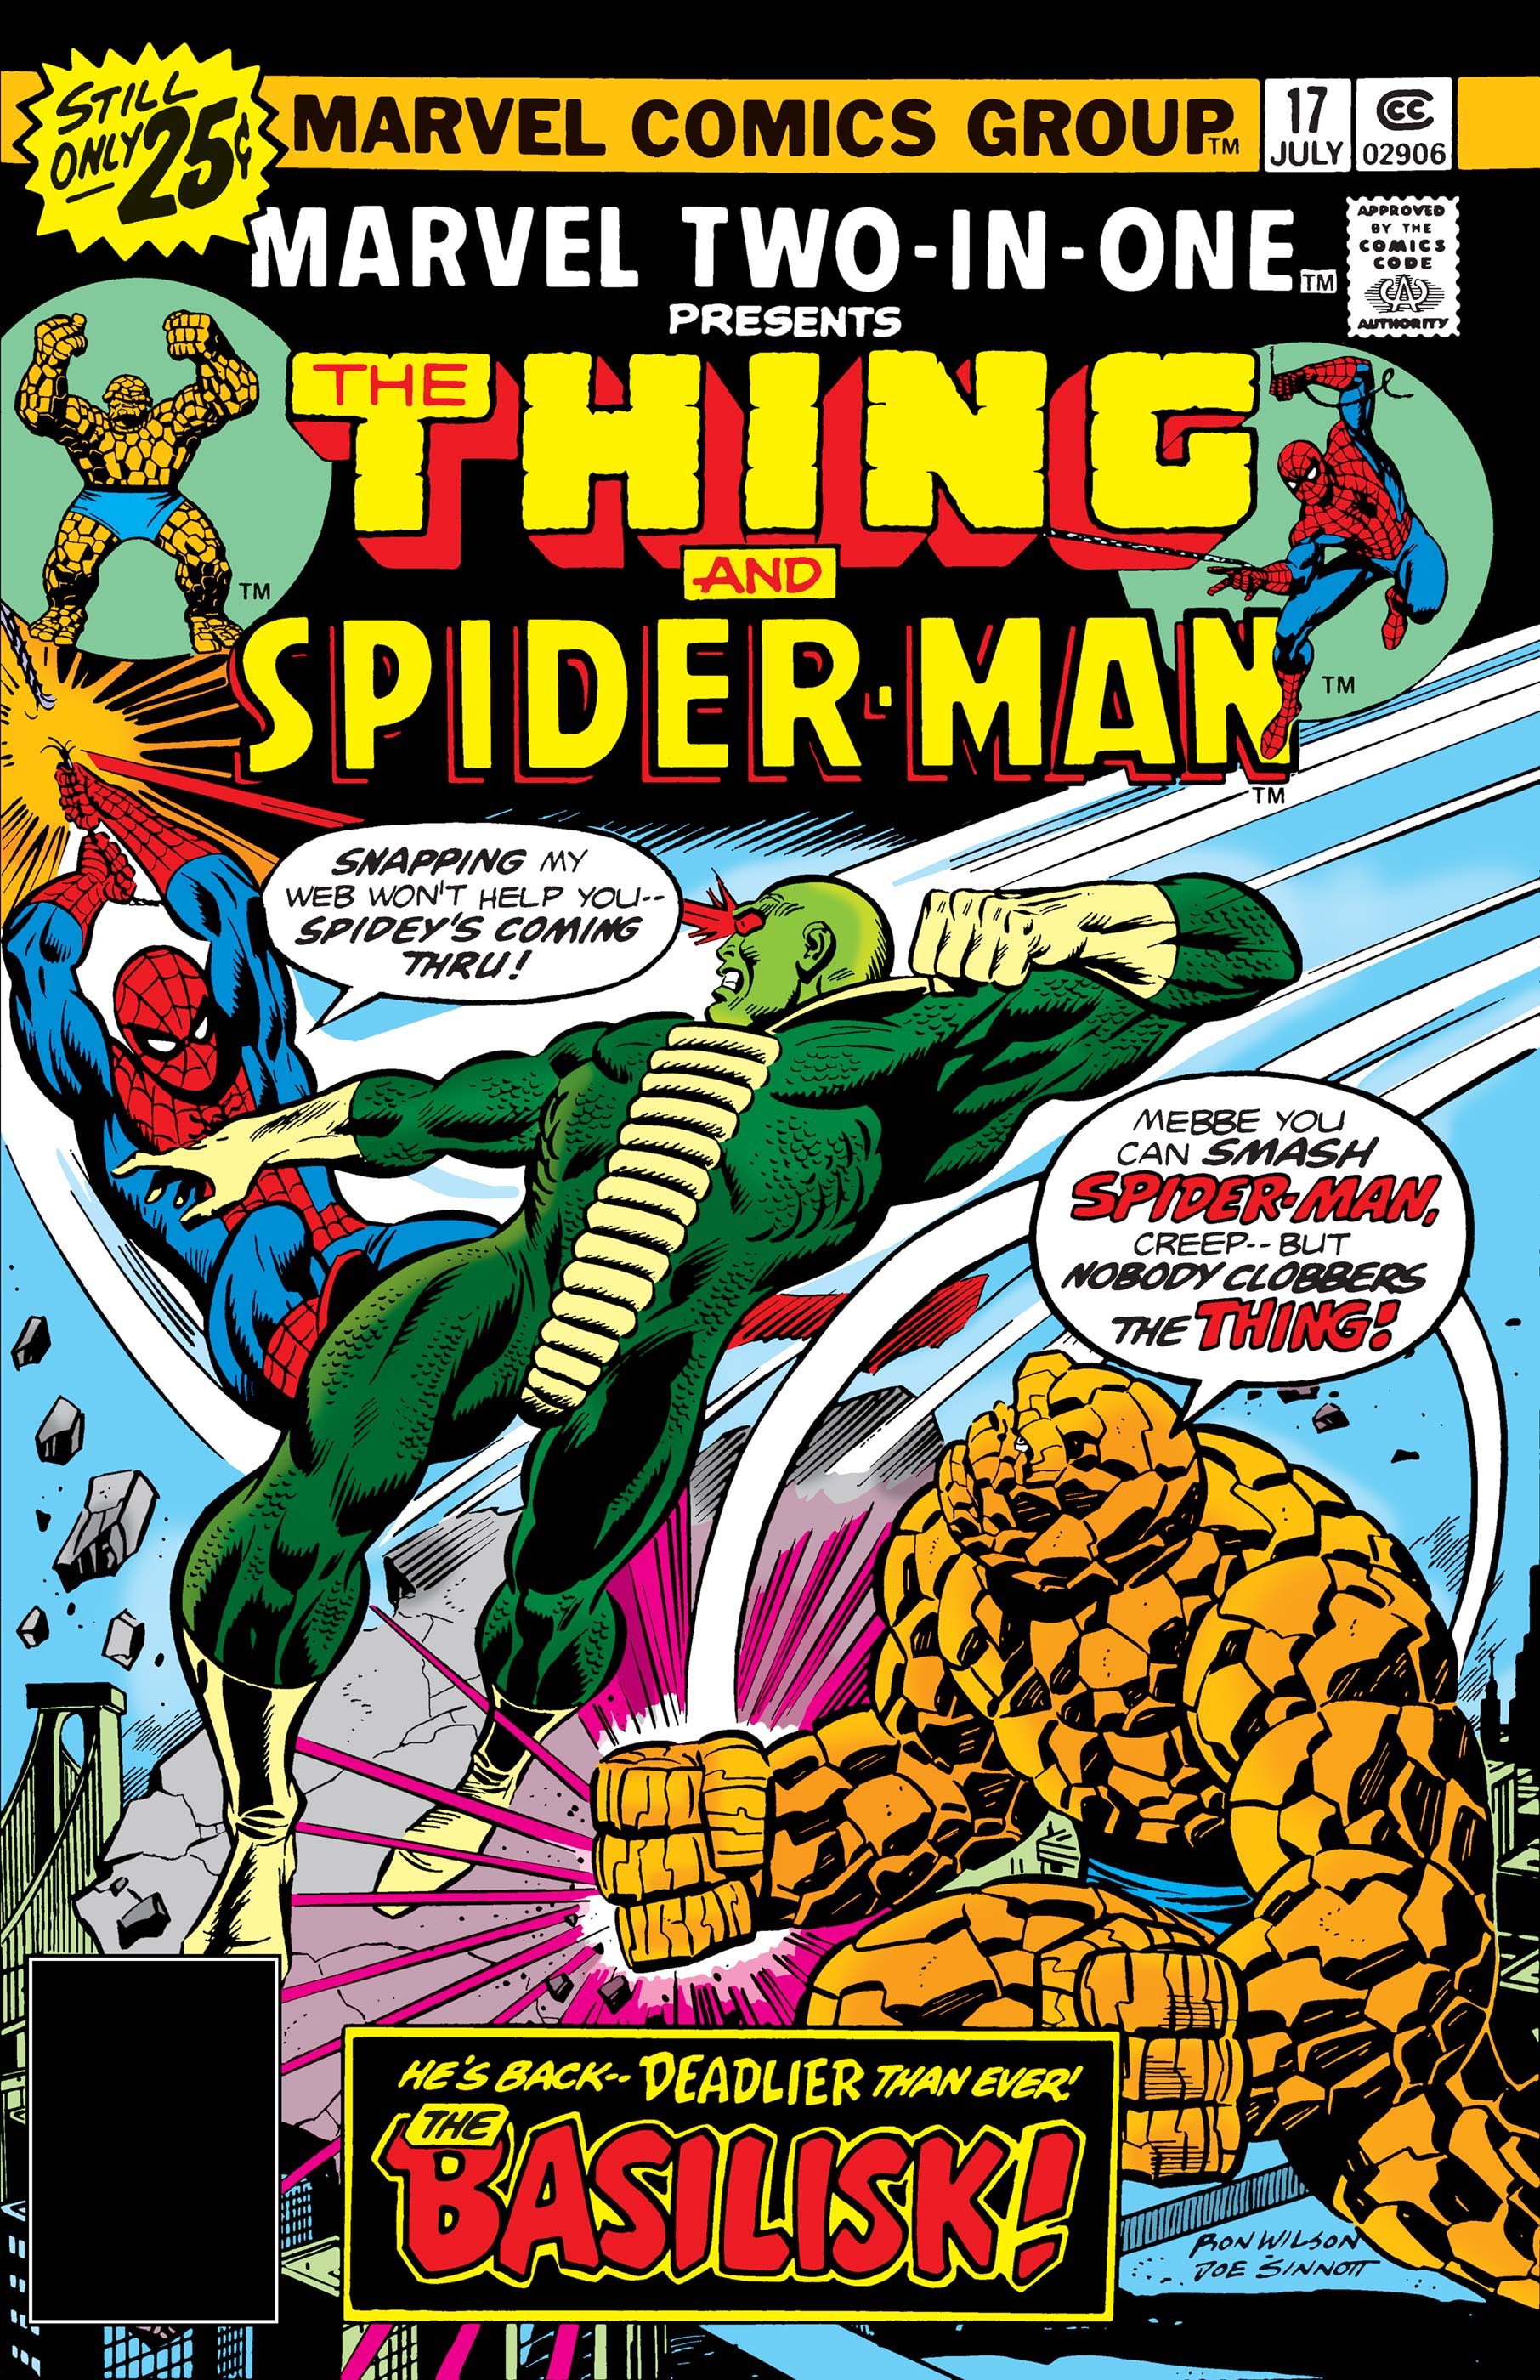 Marvel Two-in-One (1974) #17